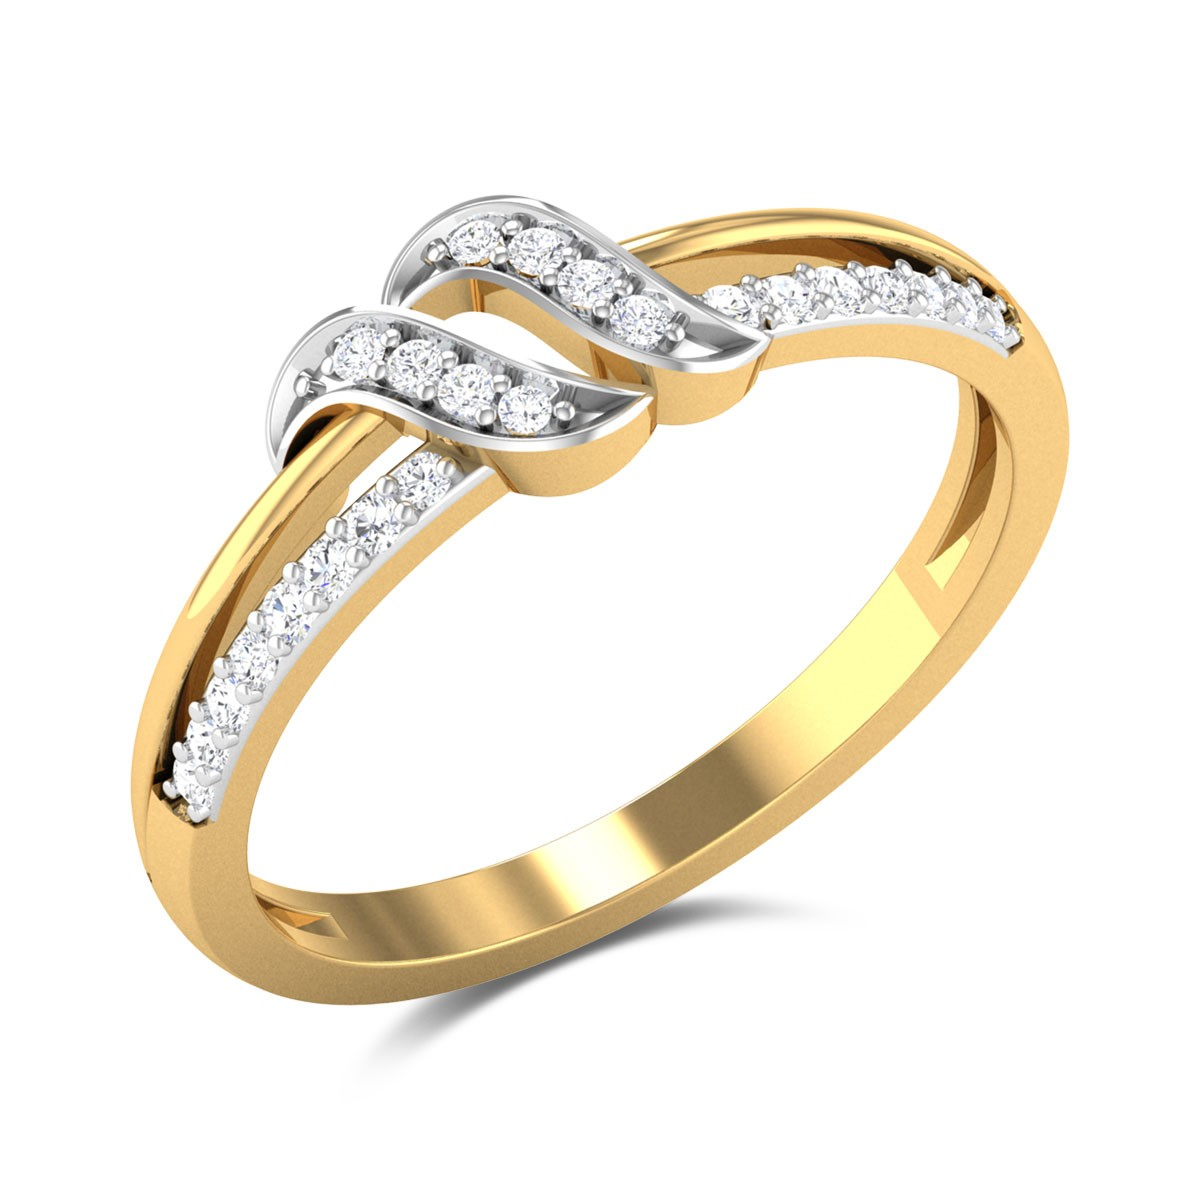 Furze Diamond Ring